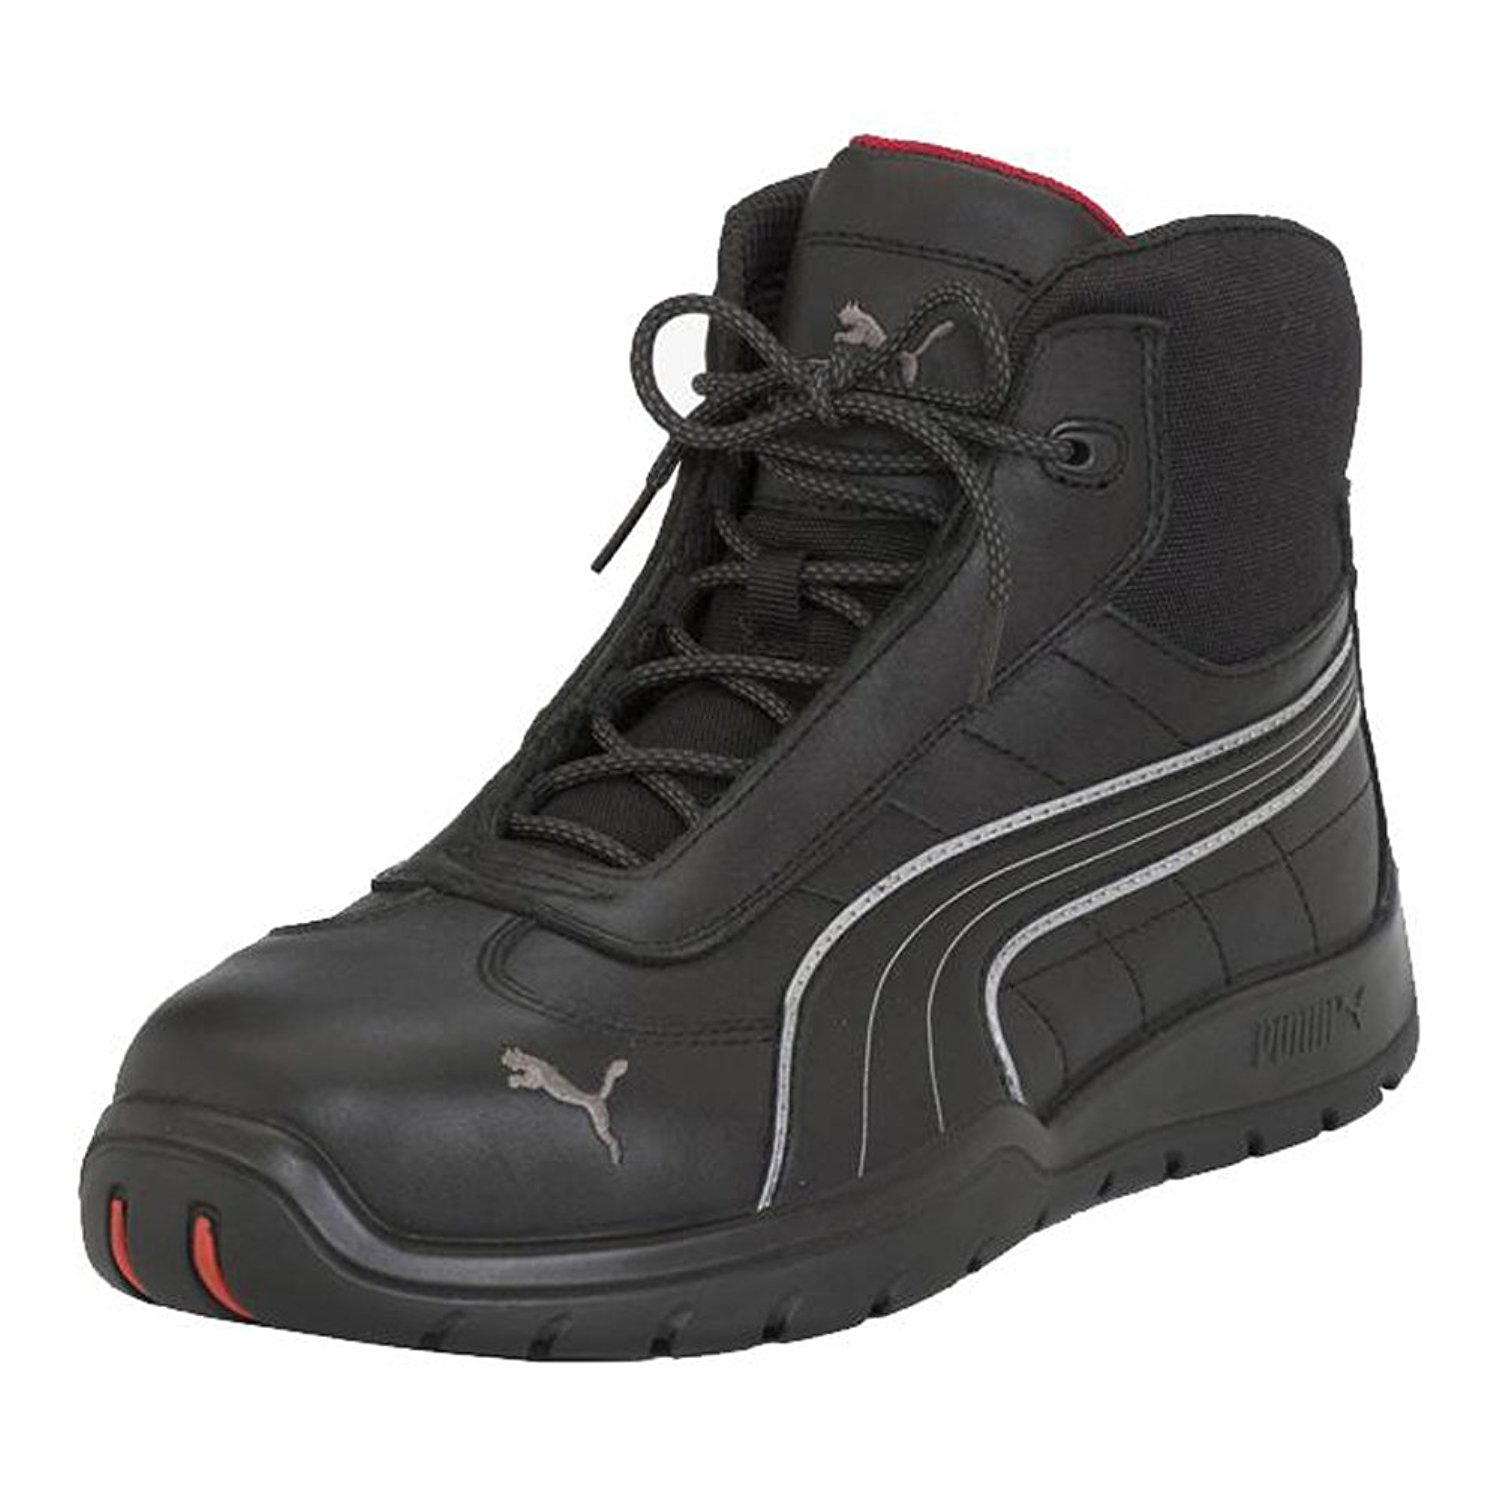 bde40a8216d Buy Puma Indy Mid Brown S3 Safety Boots   493 632180 in Cheap Price ...